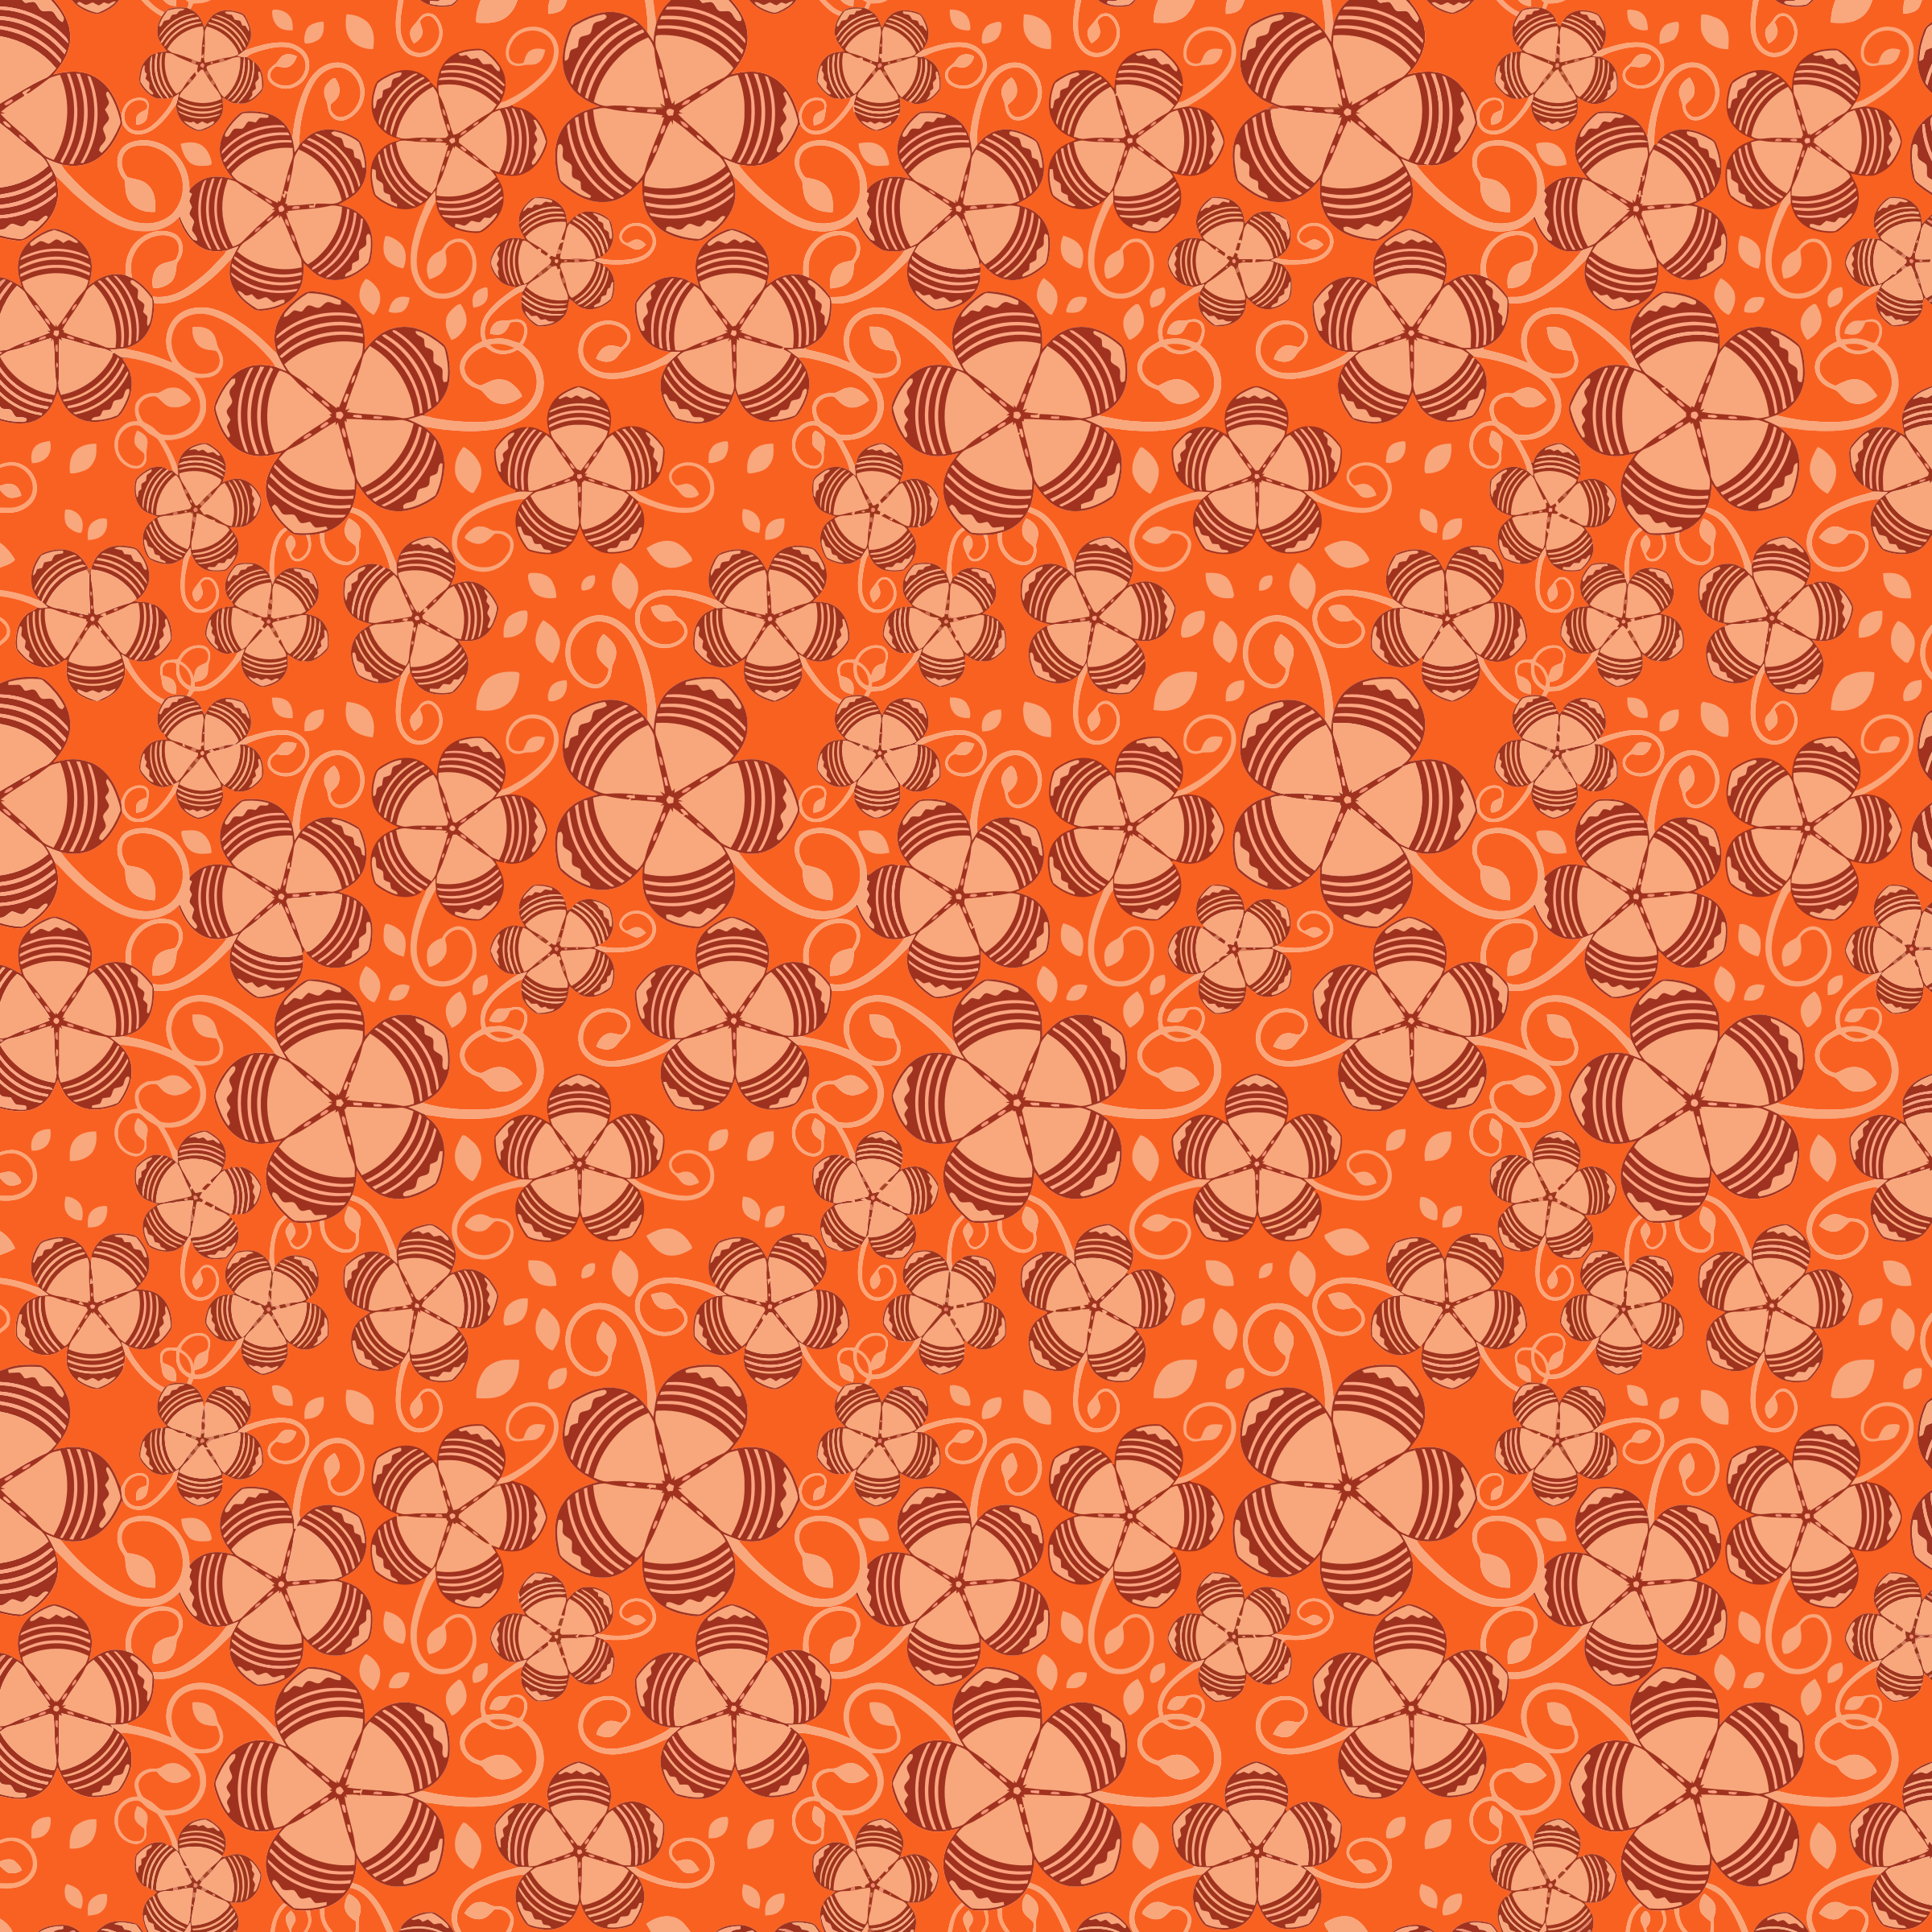 Floral Seamless Pattern 5 by GDJ